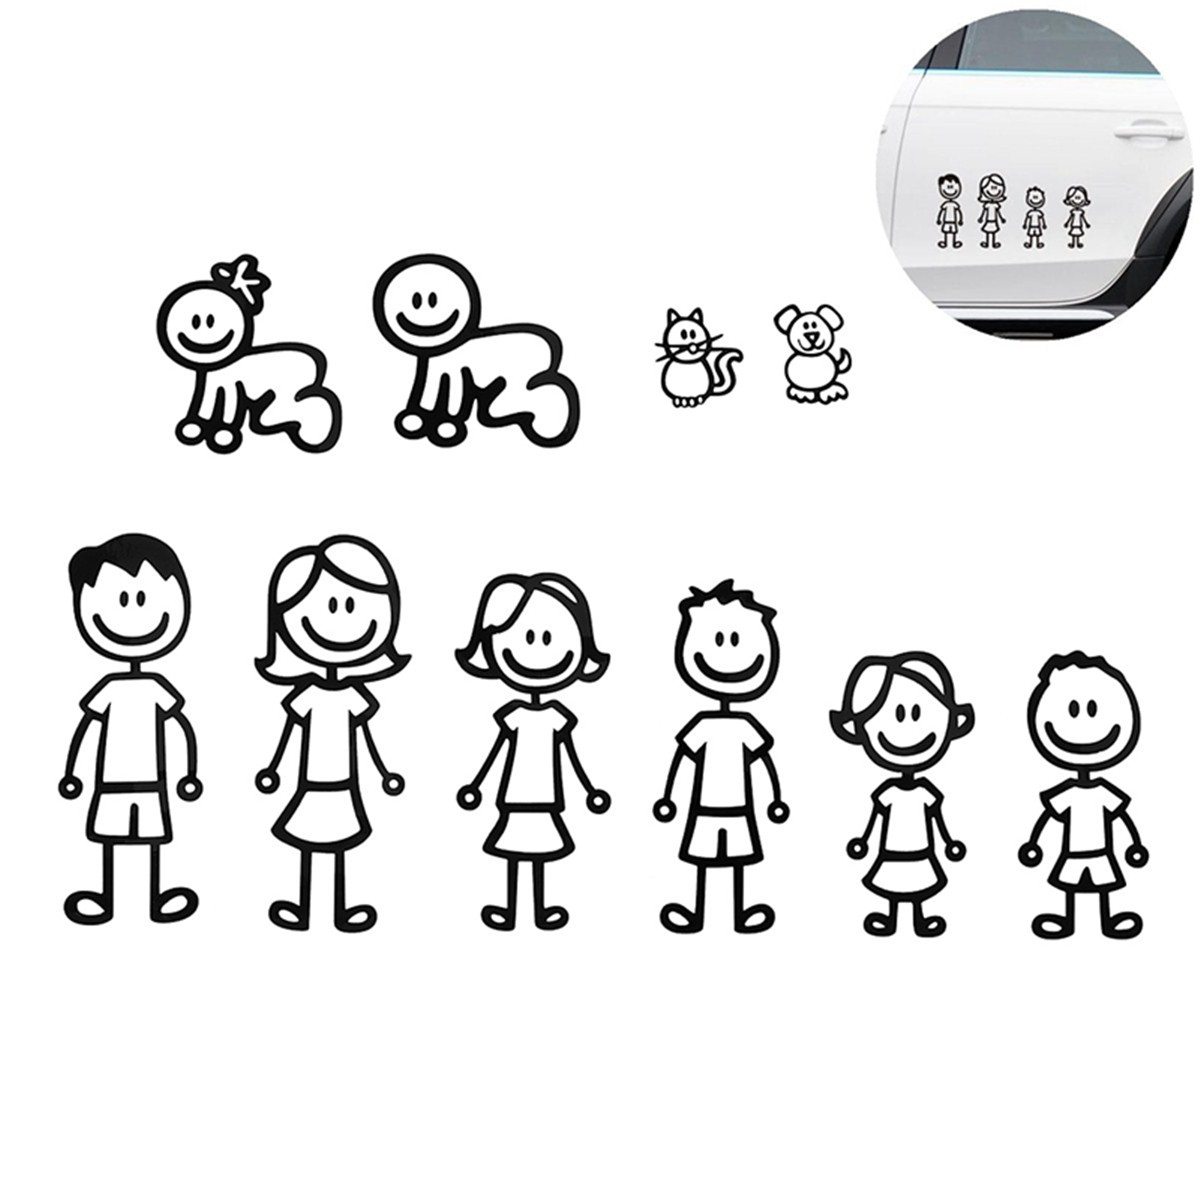 1 Pcs Family Member Car Sticker Car Decal Decoration Vinyl Art Decal For Car Removable Black member